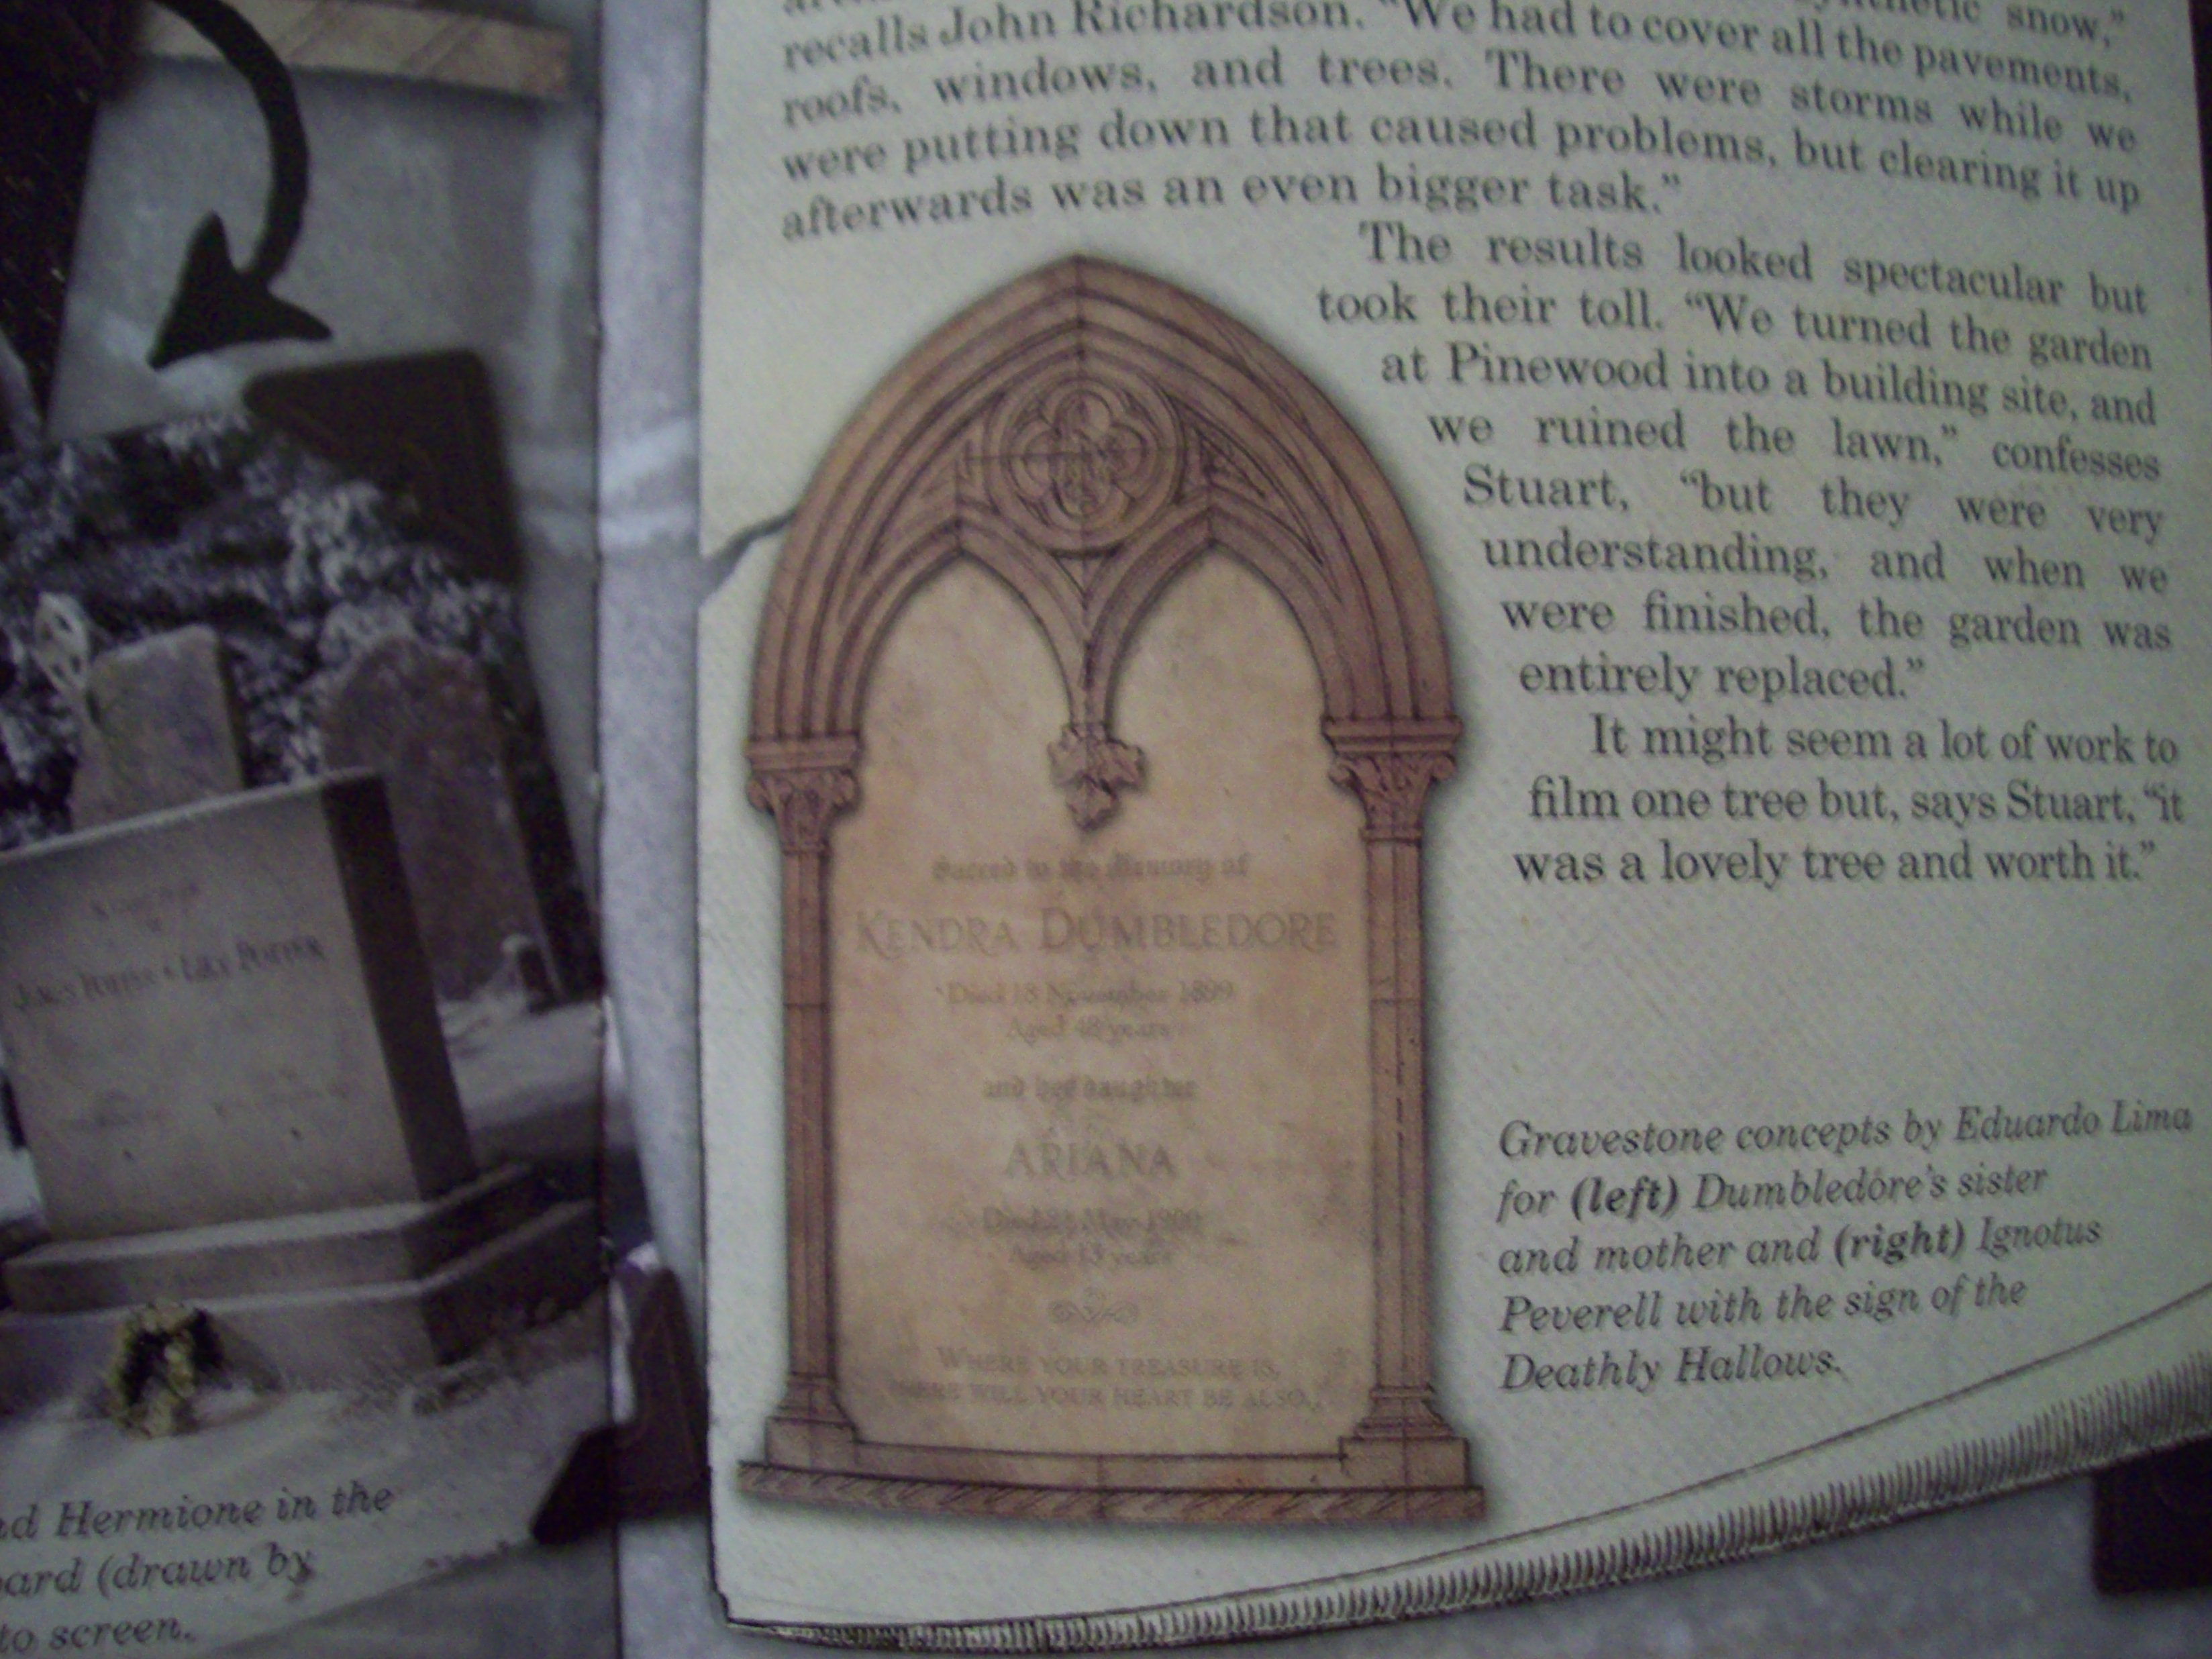 Biblical Quotations In Harry Potter The Lord Of The Hallows